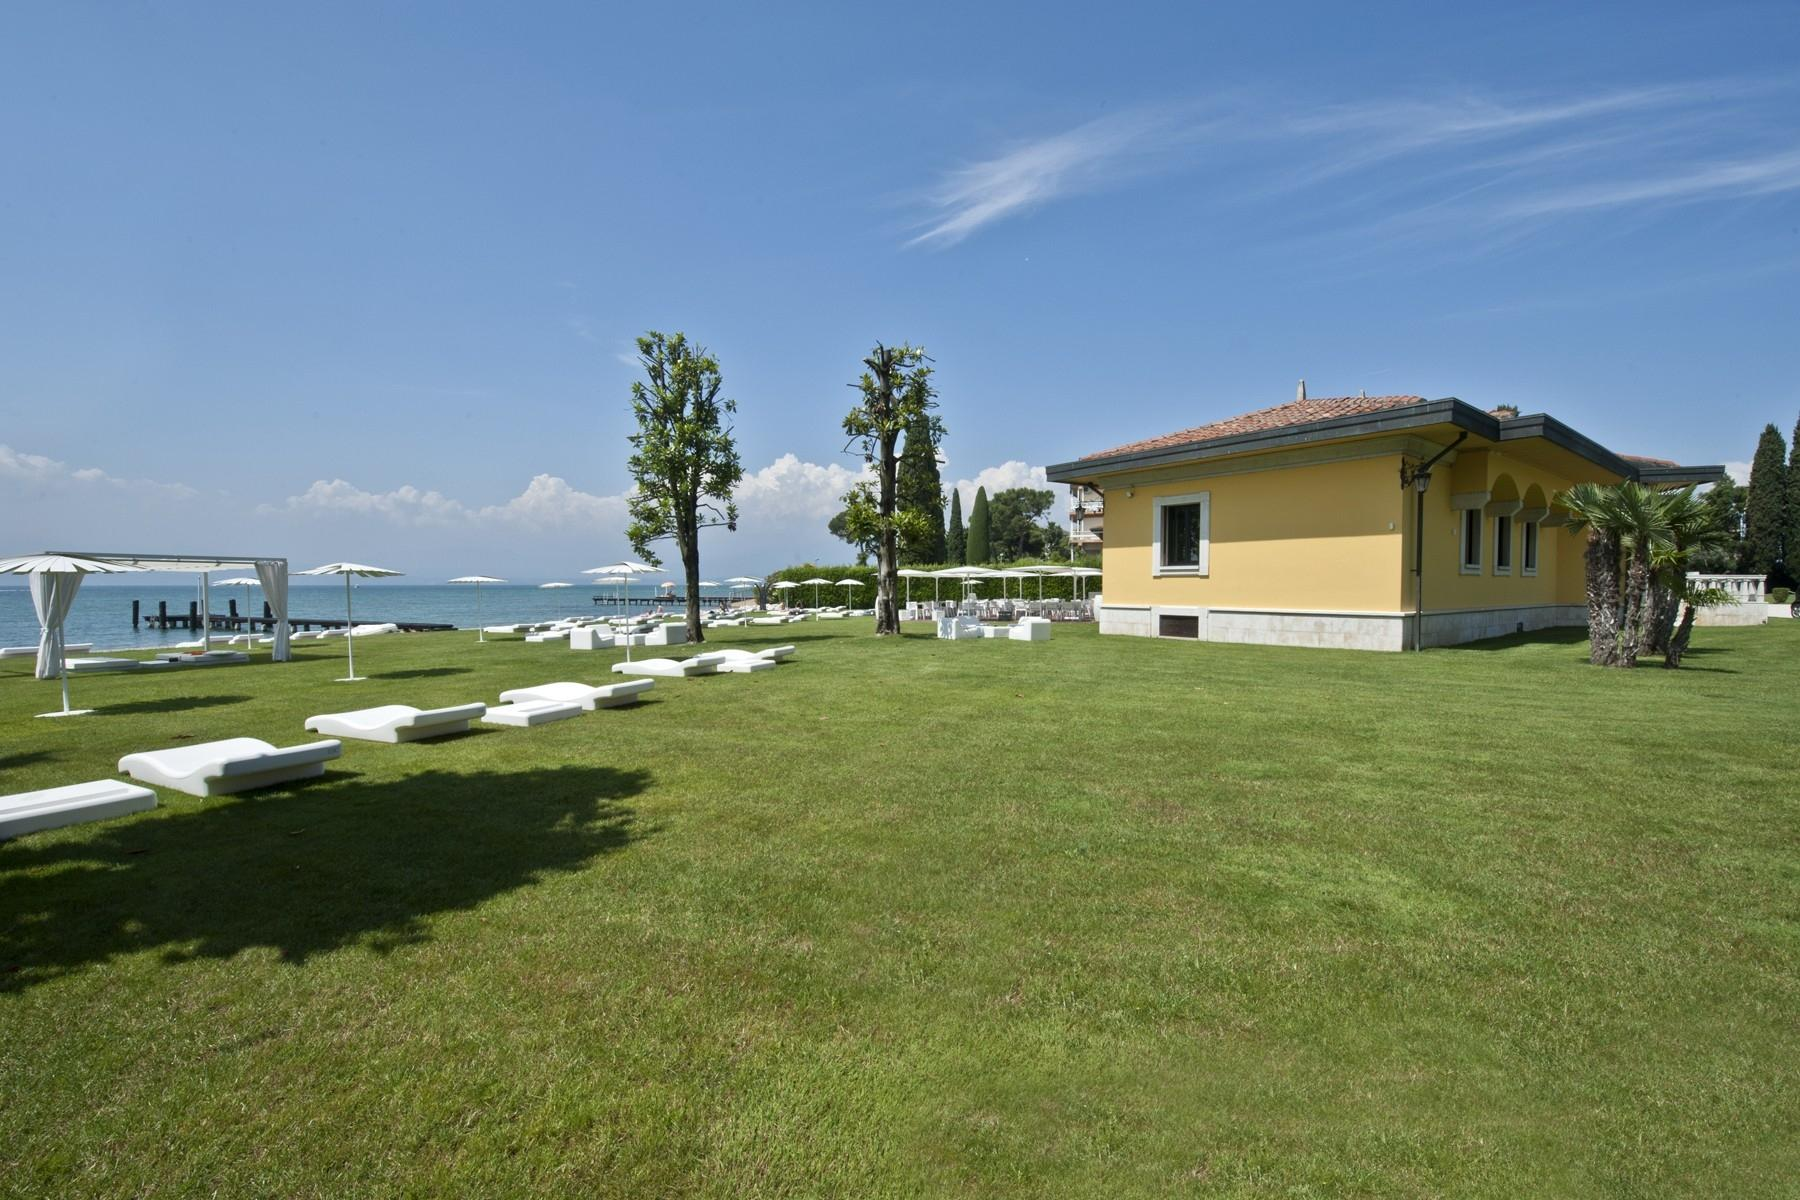 One of a kind Pieds dans l'eau villa with beach and dock in Sirmione - 7